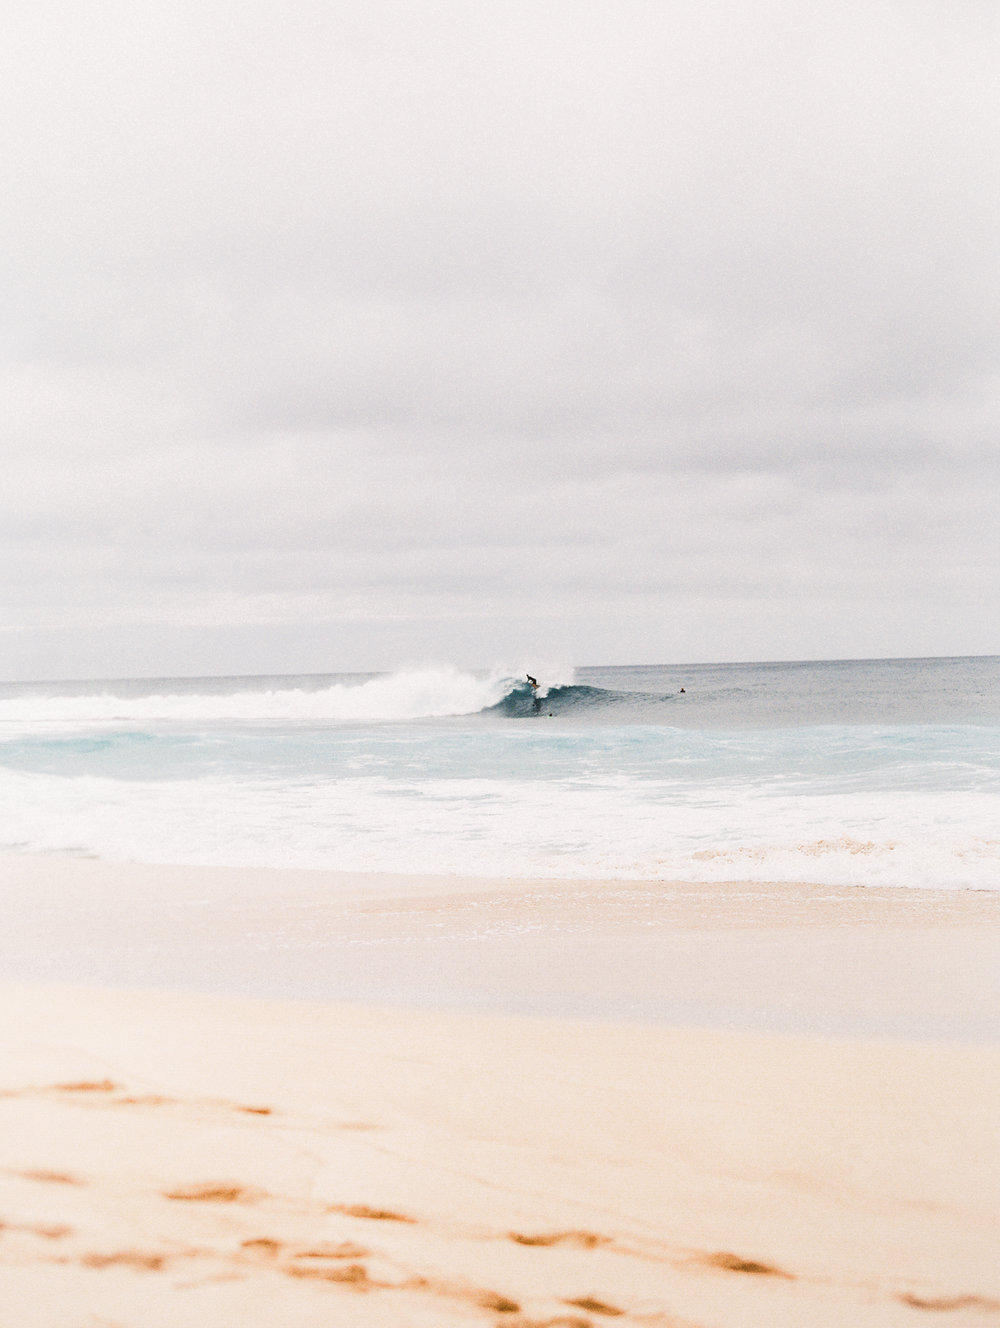 film-north-shore-surfer-kailee-dimeglio-photography-116.jpg